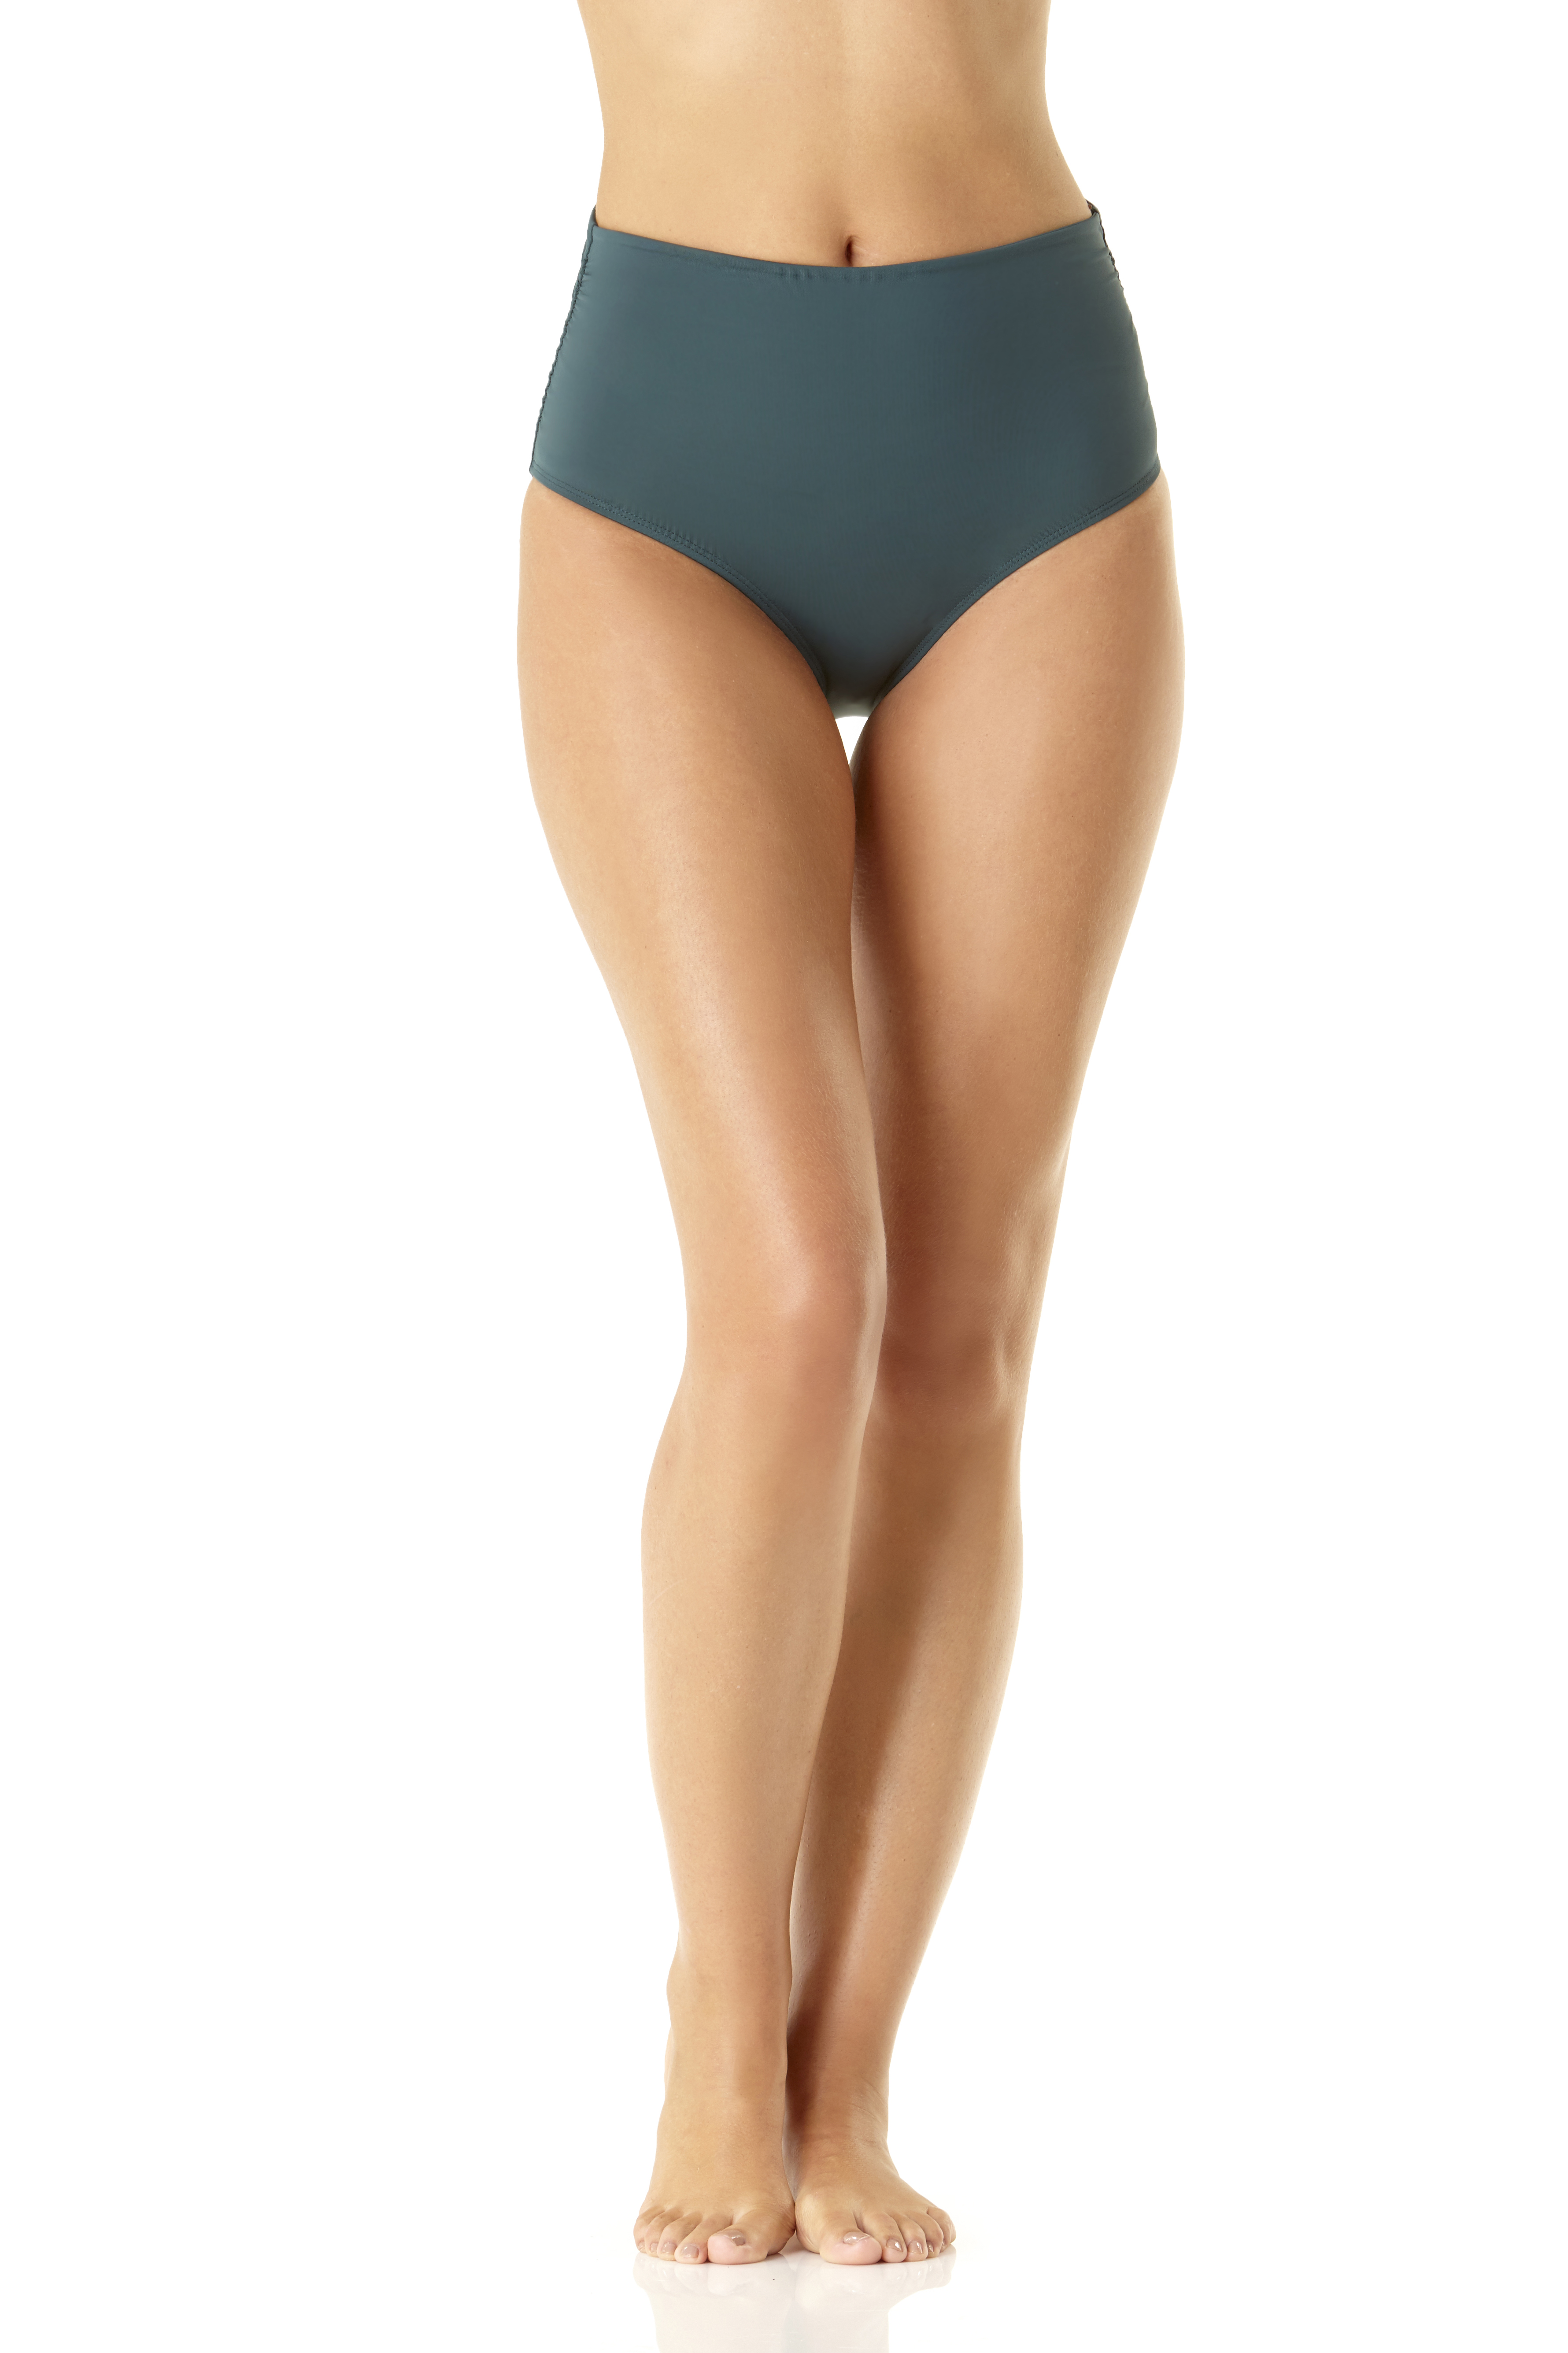 Anne Cole® Live in Color Hi Waist Shirred Bikini Swimsuit Bottom -Eucalyptus Green - Front